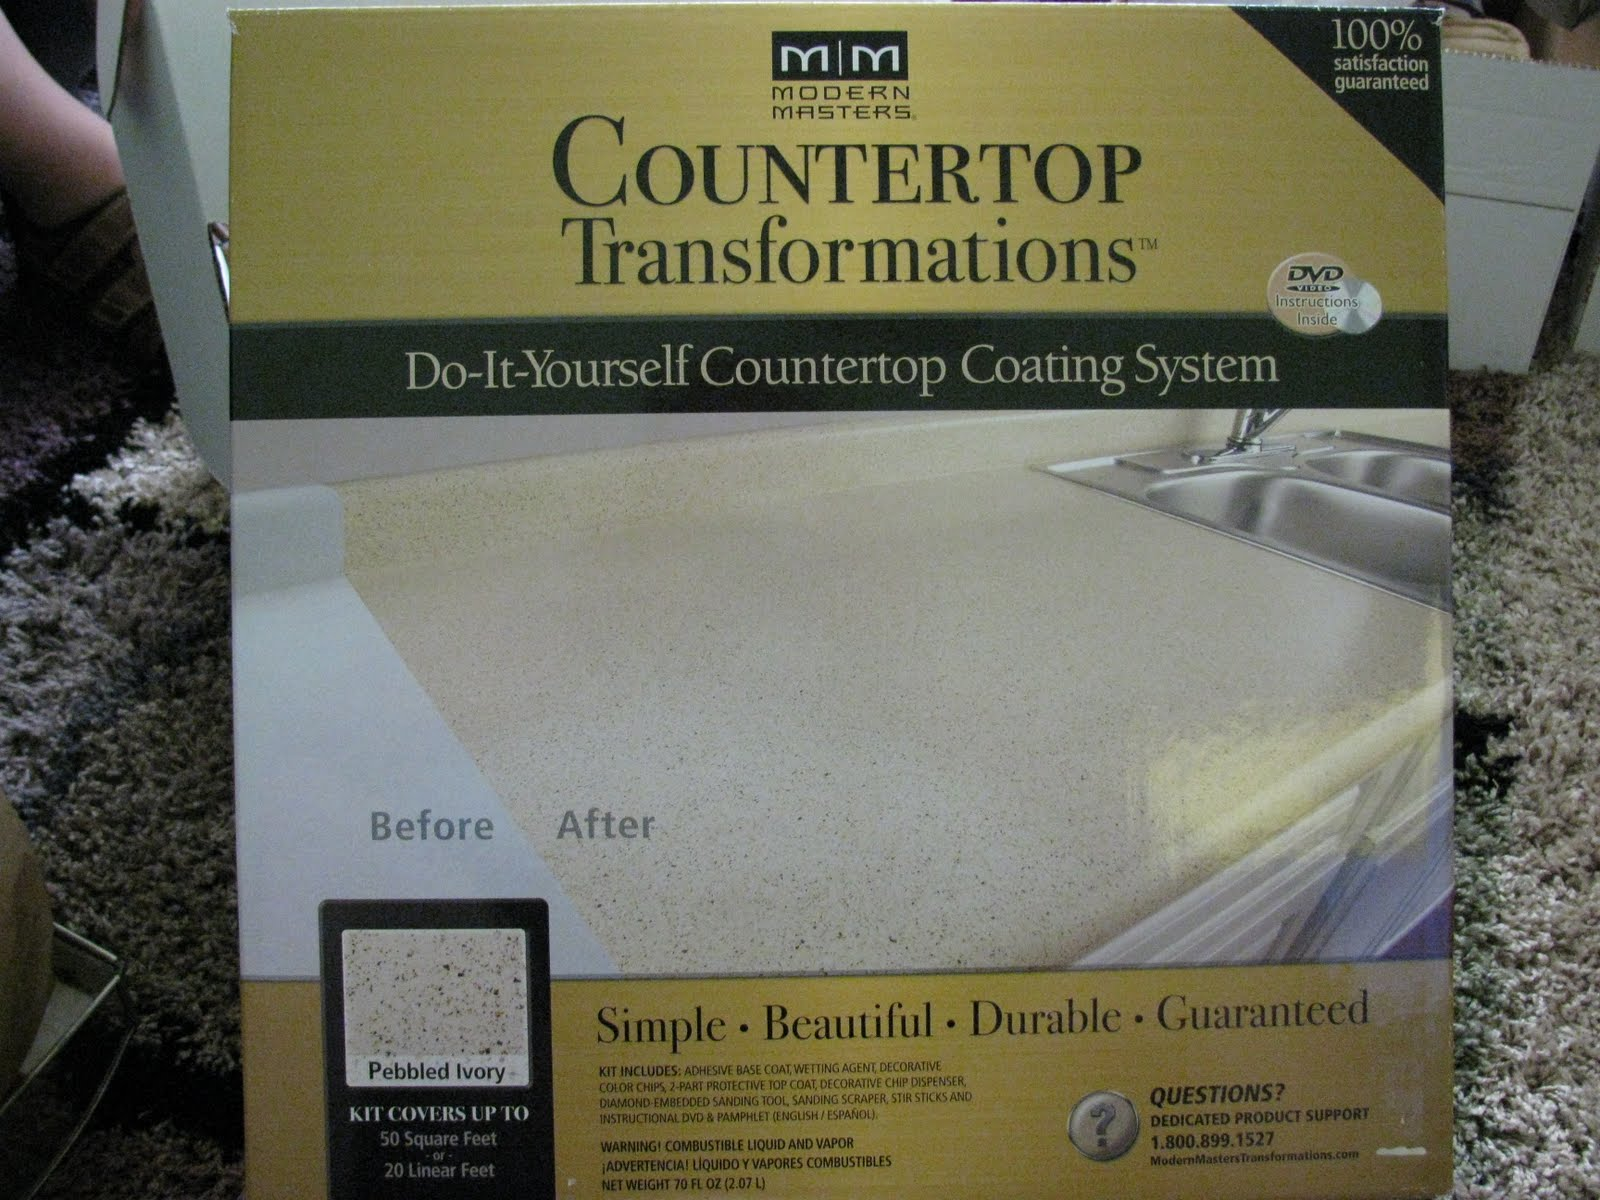 Countertop Not Long Enough : ... from the Front Lines: Transforming my Countertop into a Masterpiece